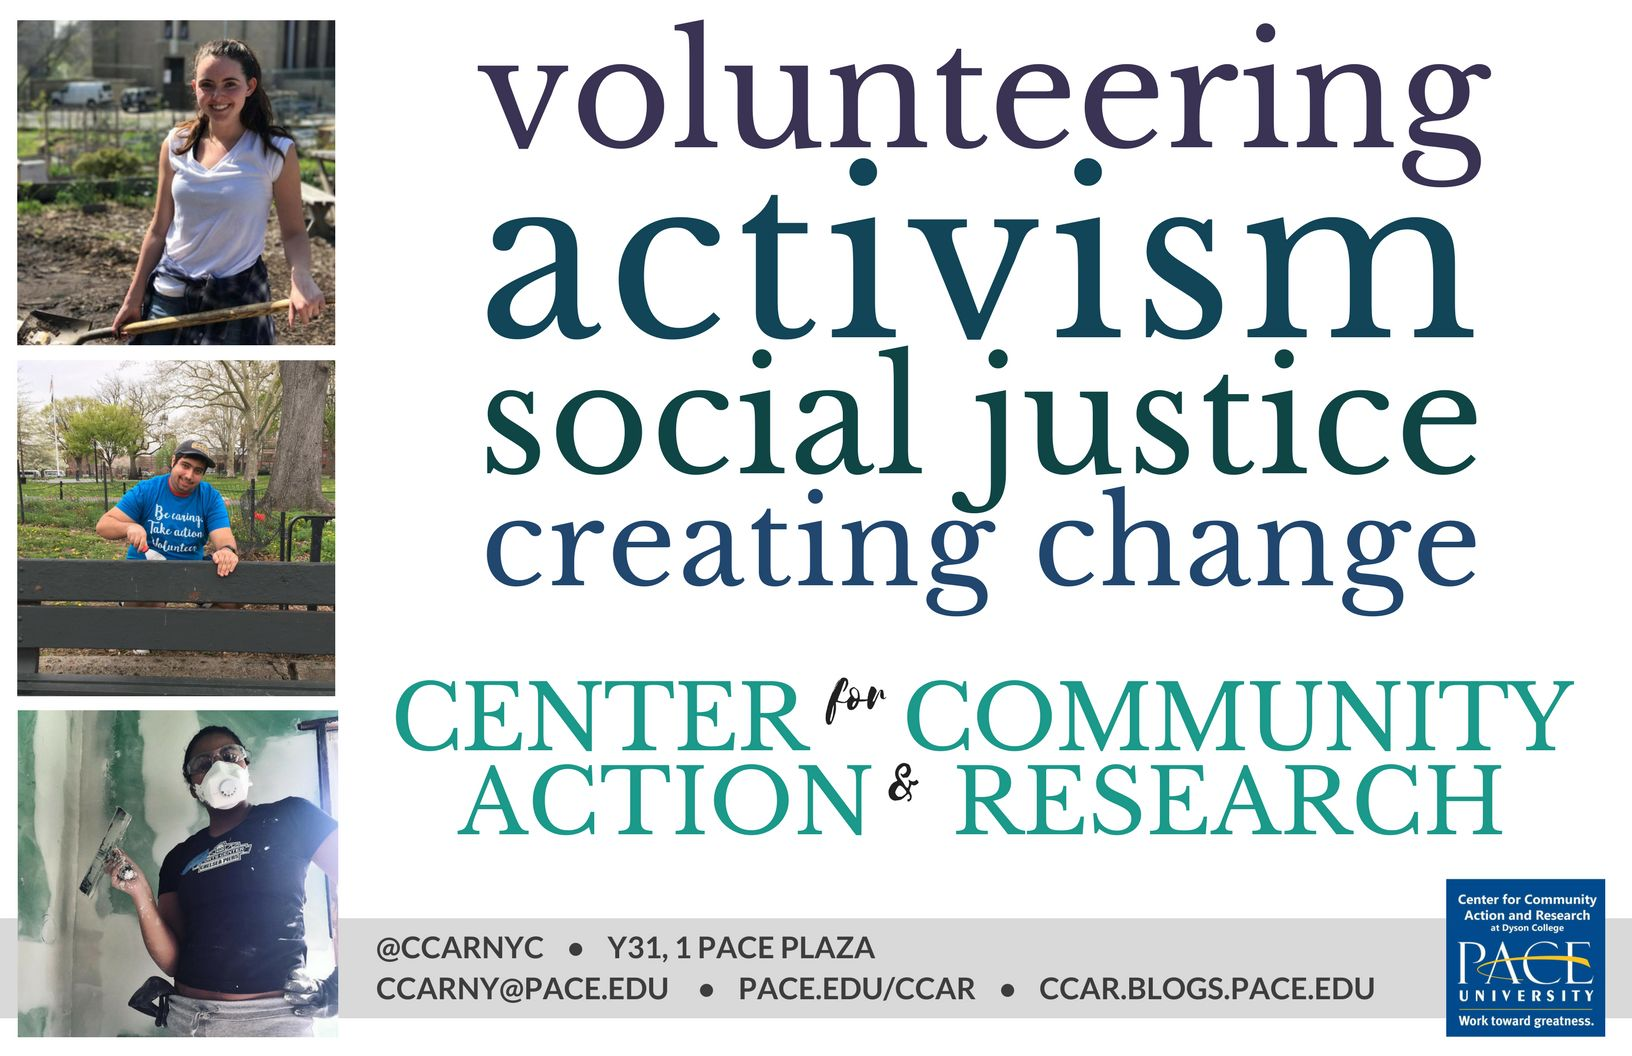 Information regarding Make a Difference with the CCAR 1 is as follows Start date is July 26 2017 and End Date is December 31 2017 and Email is akuenneke@pace.edu and Name is Ashley Kuenneke and File is Browse and Group Name is Center for Community Action and Reserach and Affiliation is Department and File Name is 117168_comp.jpg and Panel is Main and Name of Ad/Event is Make a Difference with the CCAR 1 and